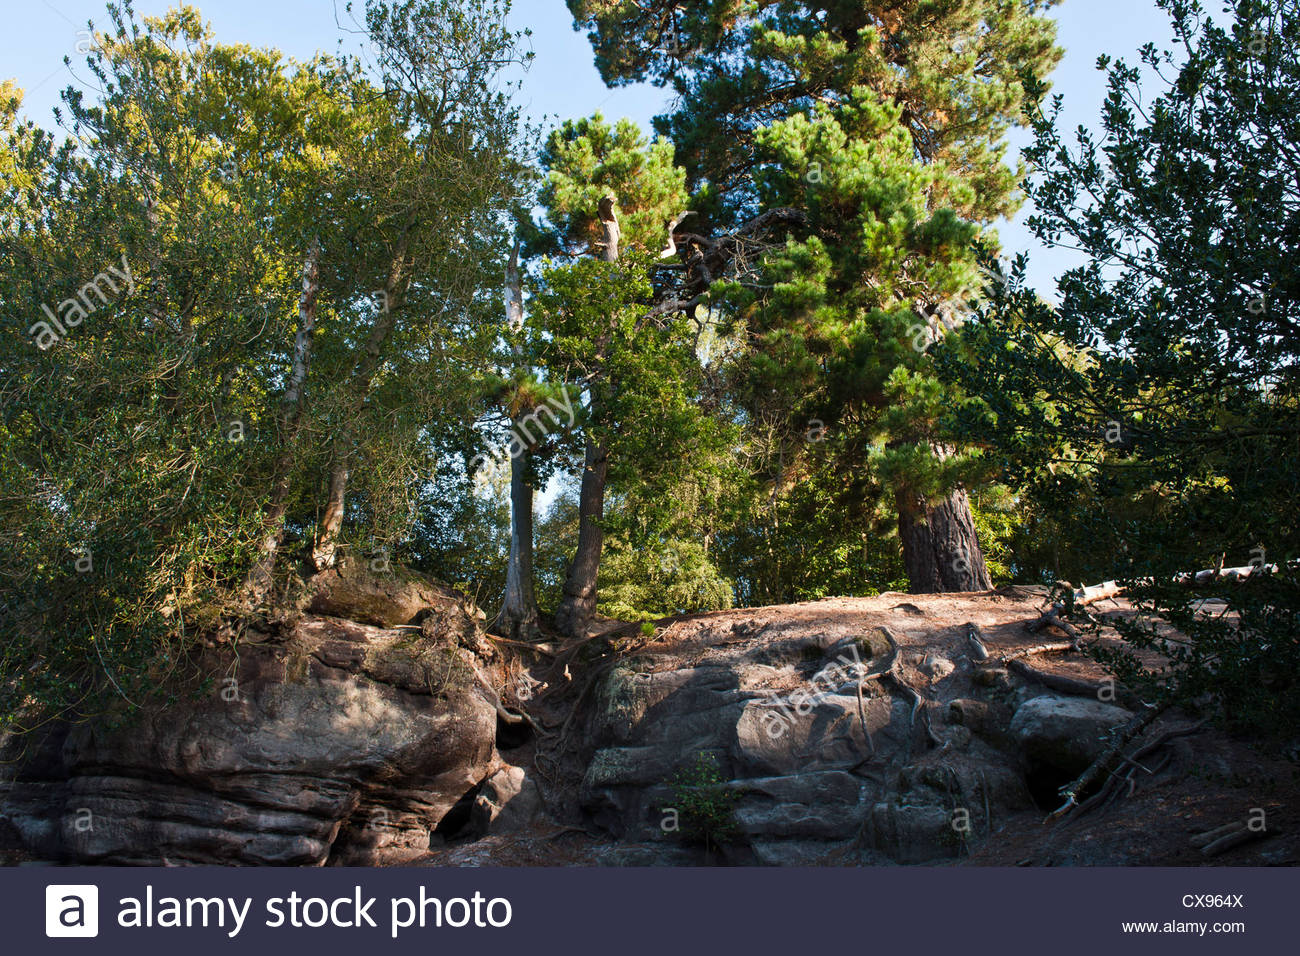 scots scottish pine Pinus sylvestris tree trunk Lake Wood East Sussex Woodland Trust sandstone ridges late summer - Stock Image